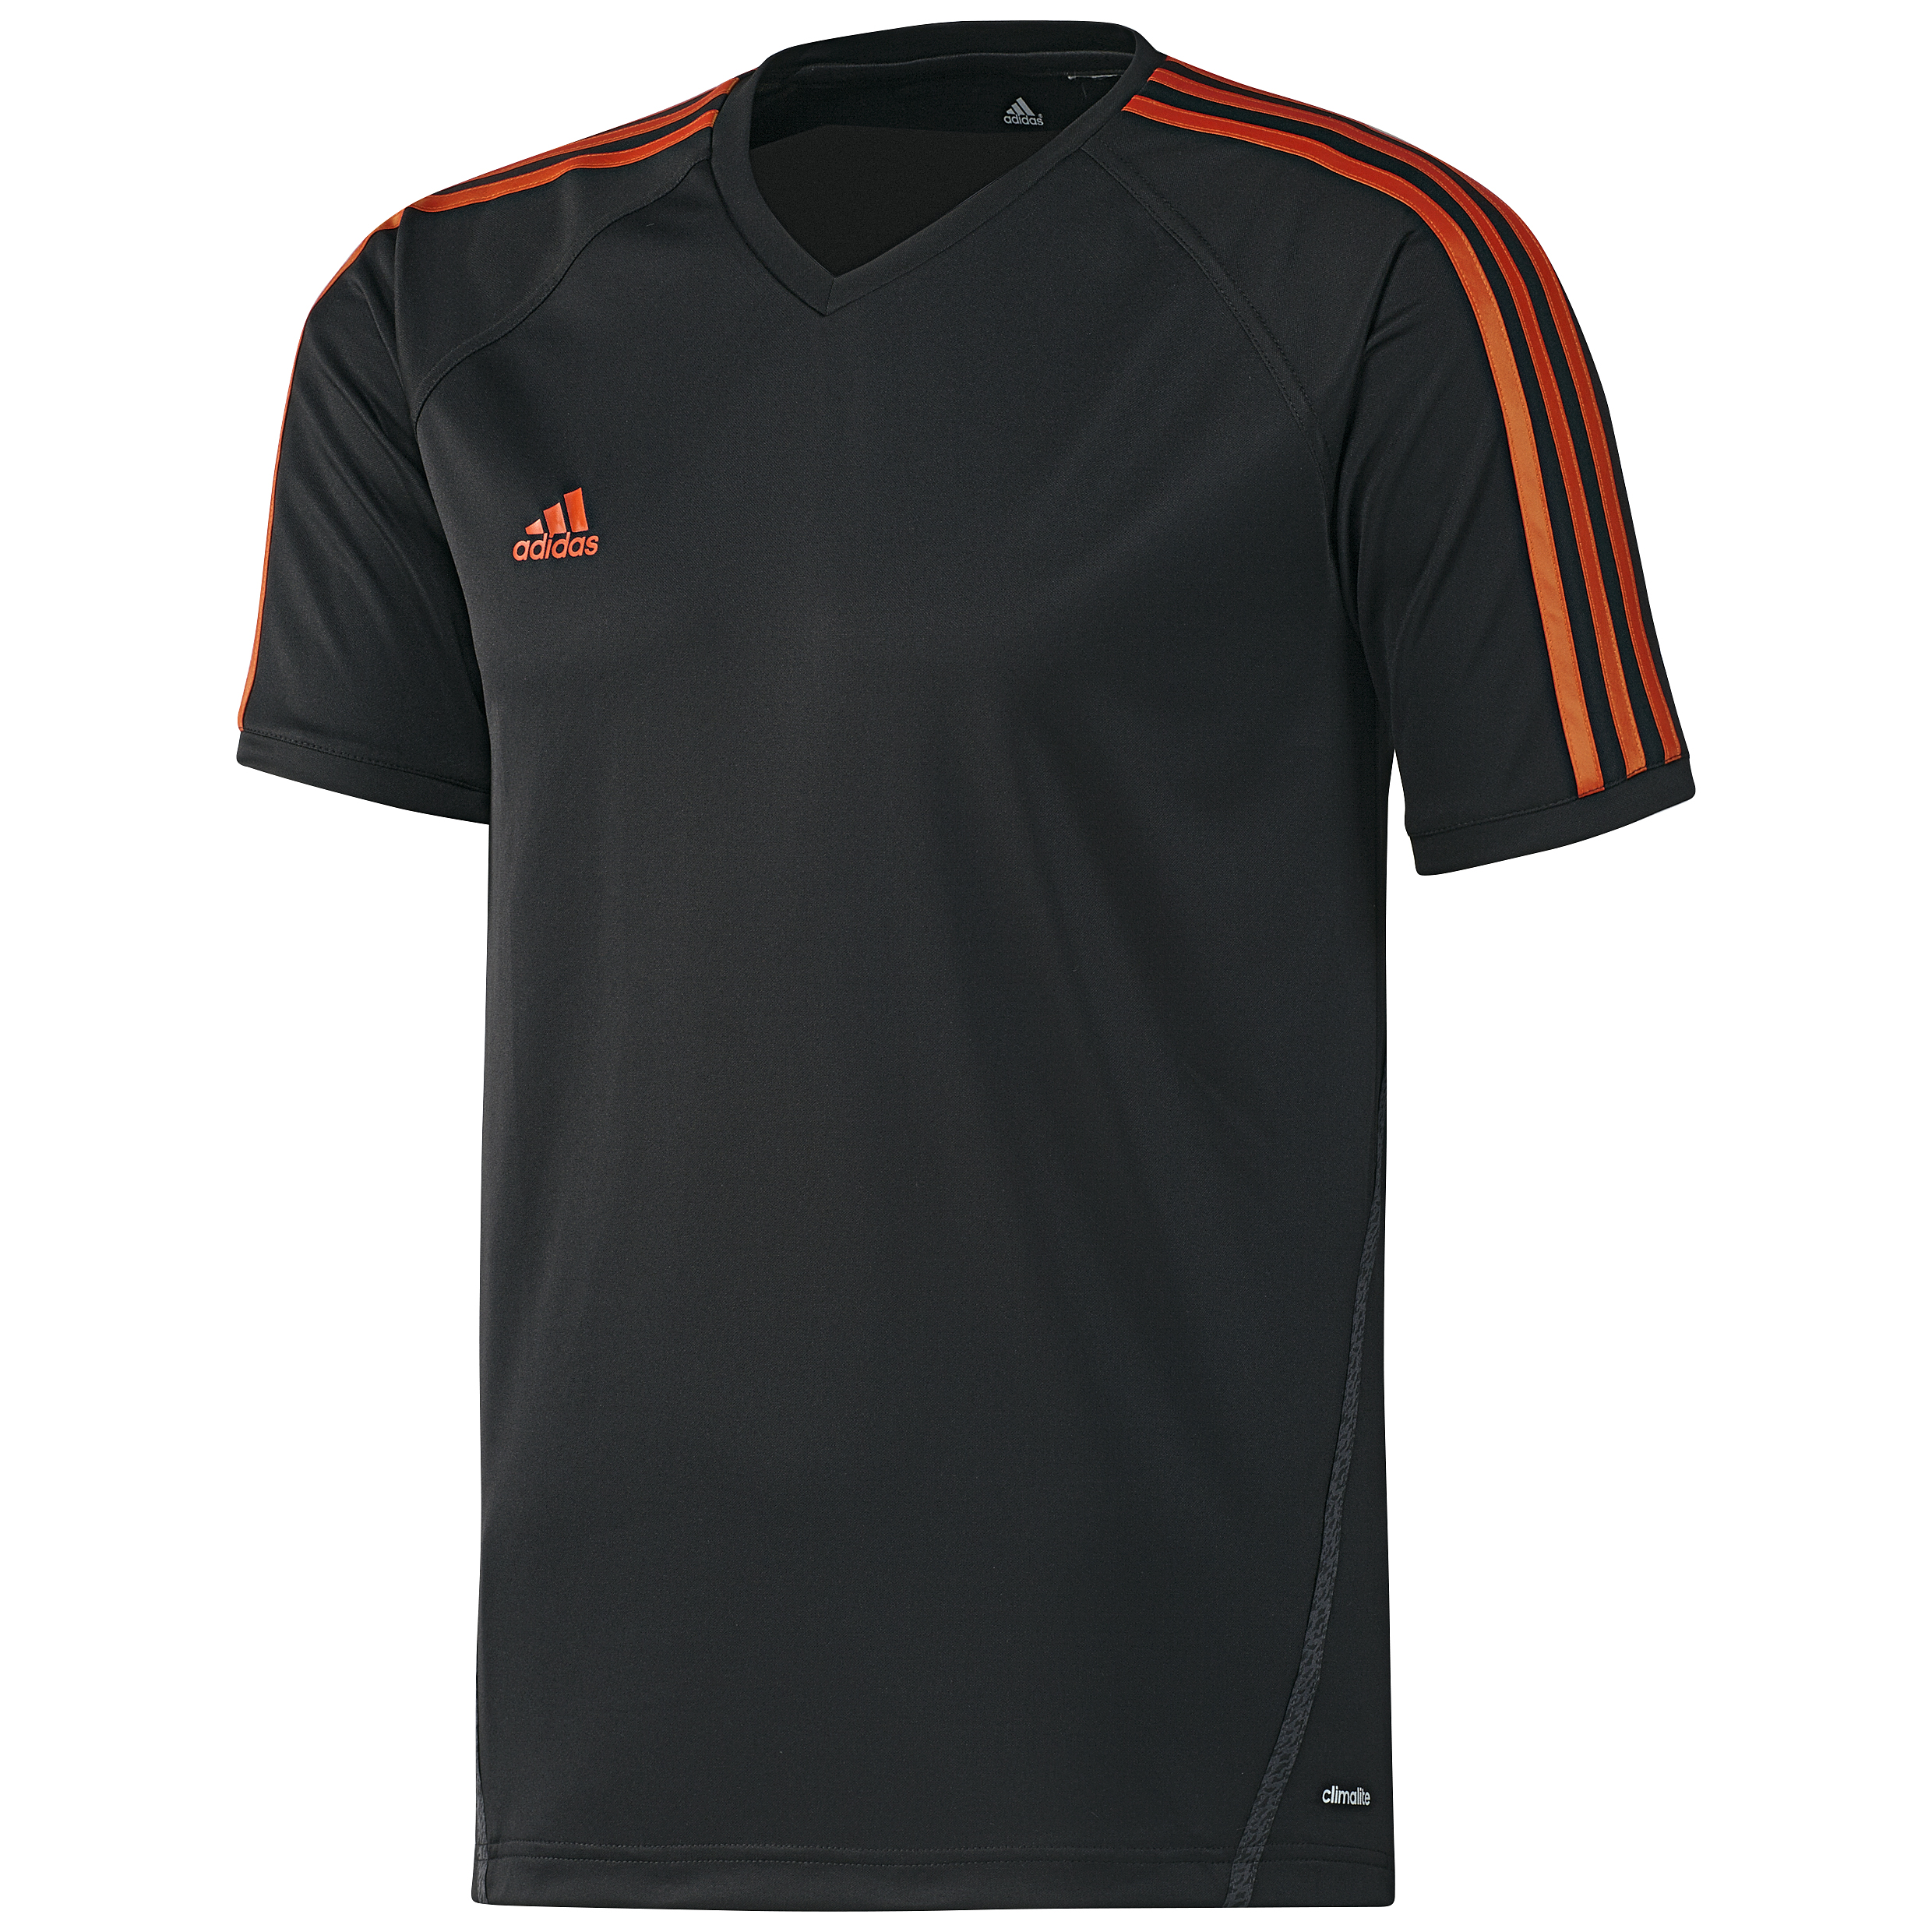 Adidas World Cup Clima Lite Tee Black